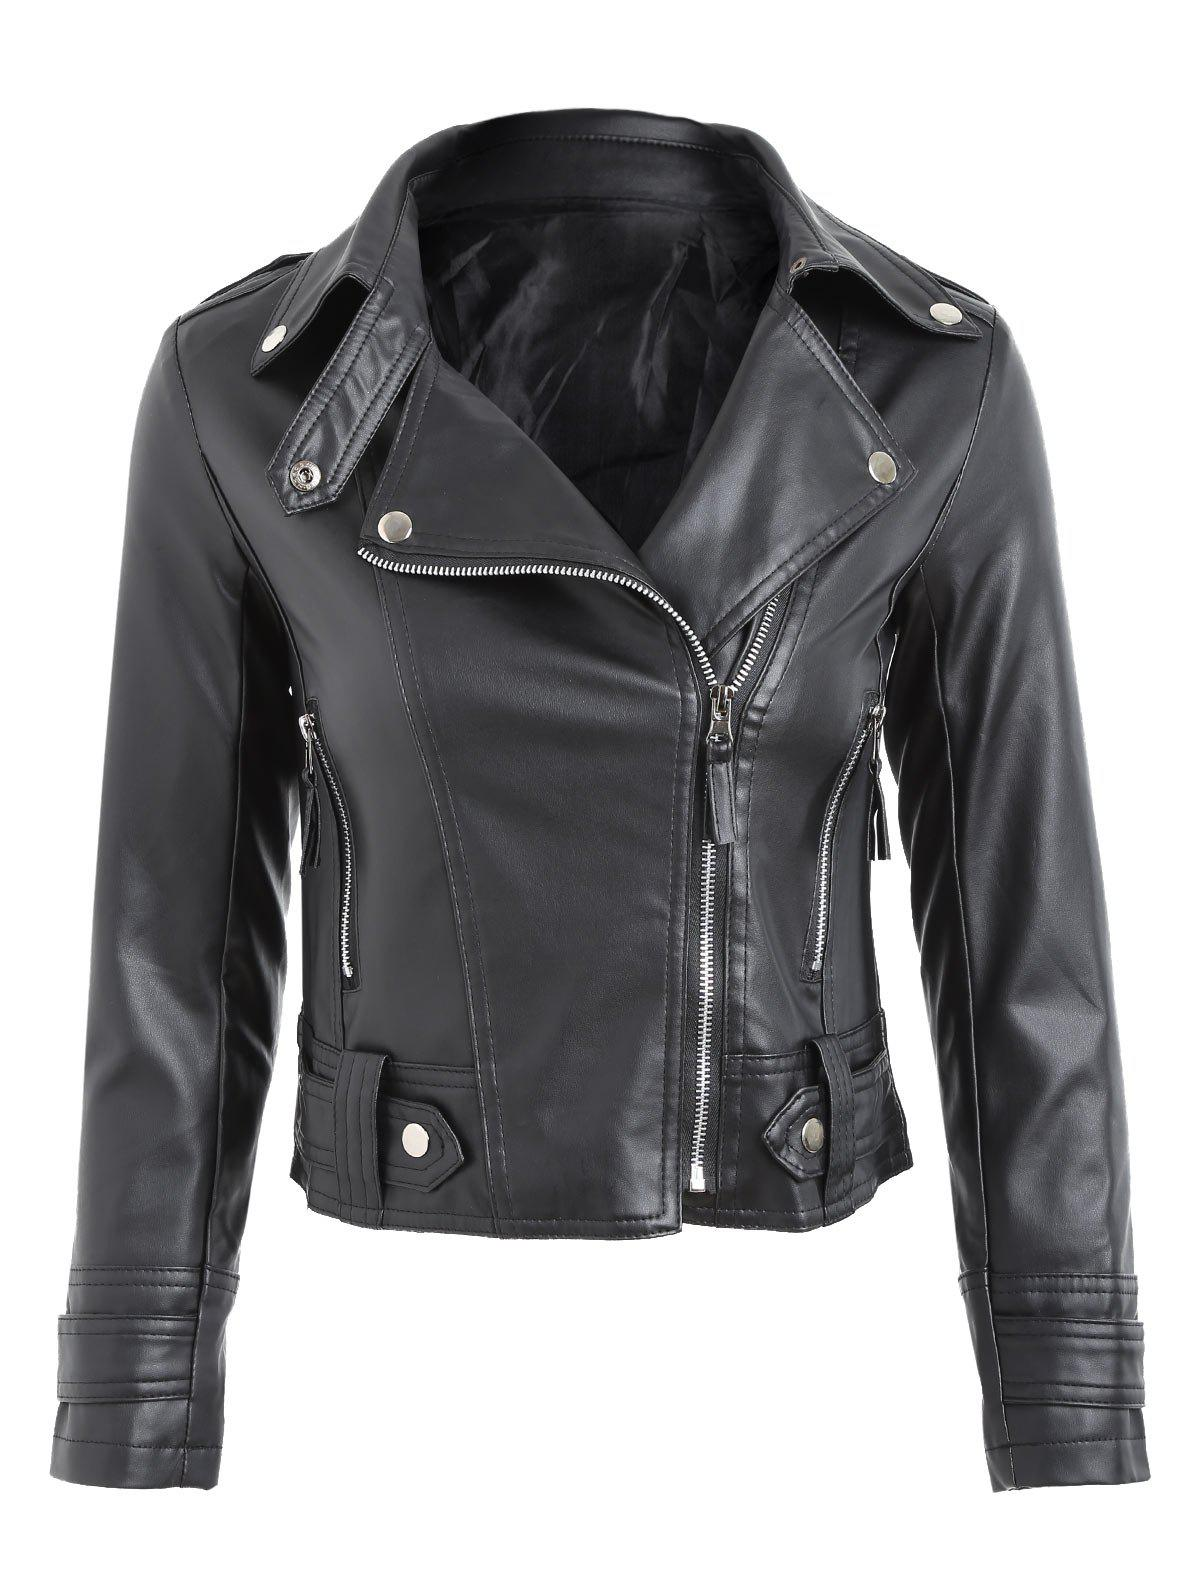 Faux Leather Biker JacketWOMEN<br><br>Size: L; Color: BLACK; Clothes Type: Jackets; Material: Faux Leather,Polyester; Type: Slim; Shirt Length: Short; Sleeve Length: Three Quarter; Collar: Turn-down Collar; Pattern Type: Solid; Style: Fashion; Season: Fall,Spring; Weight: 0.5500kg; Package Contents: 1 x Jacket;